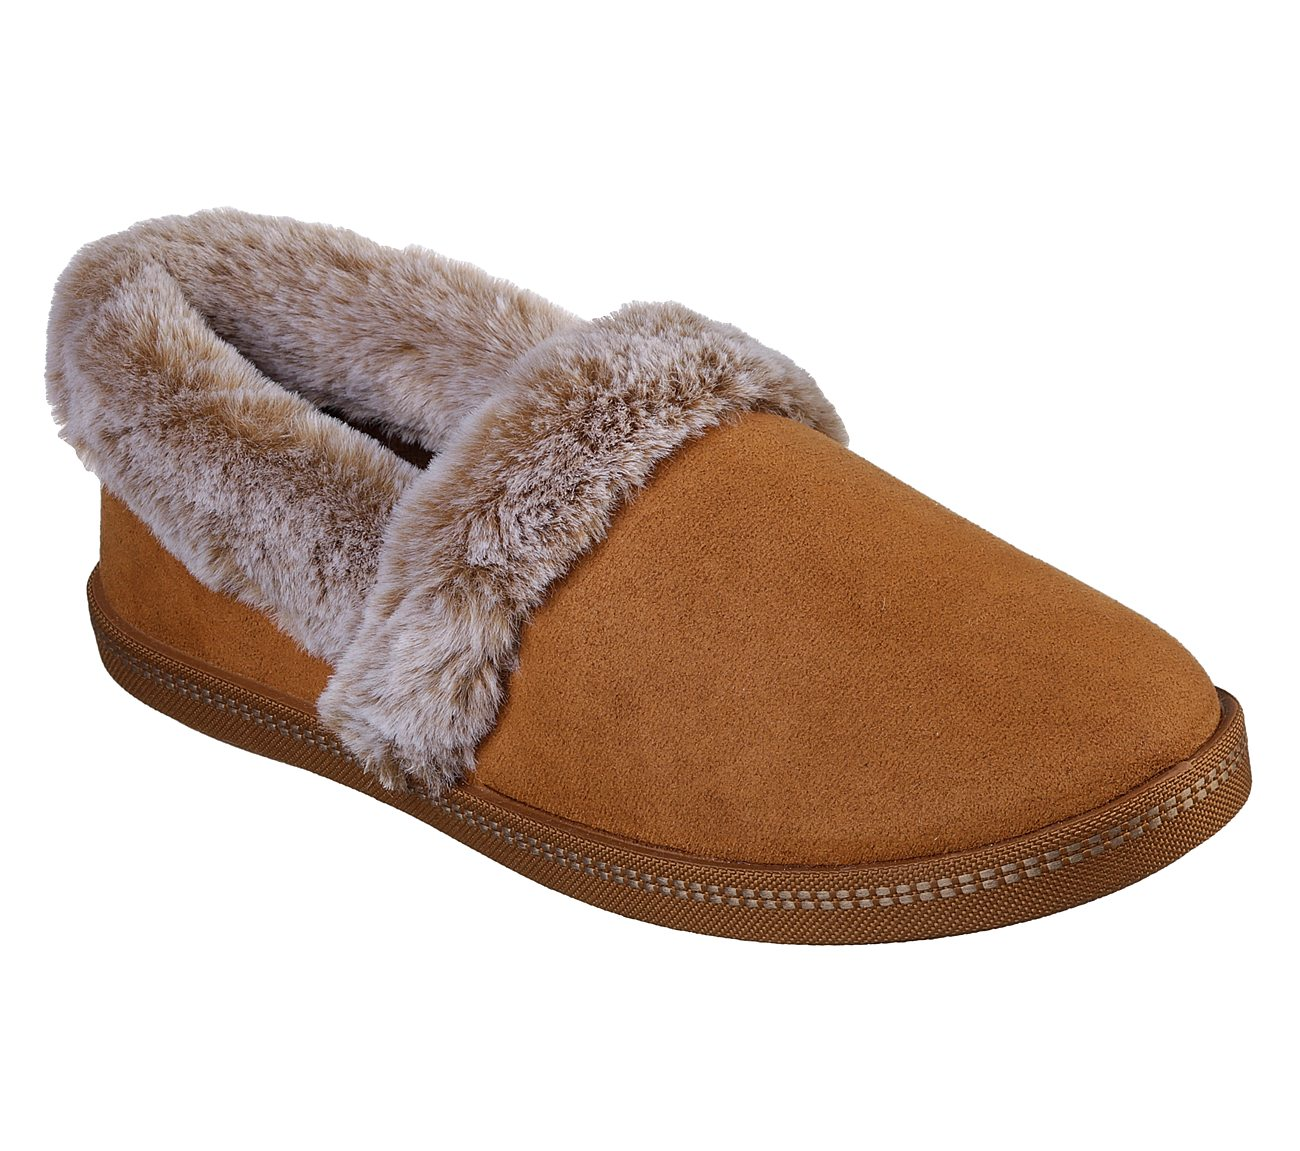 463ac6db0e59 Buy SKECHERS Cozy Campfire - Team Toasty BOBS Shoes only  50.00